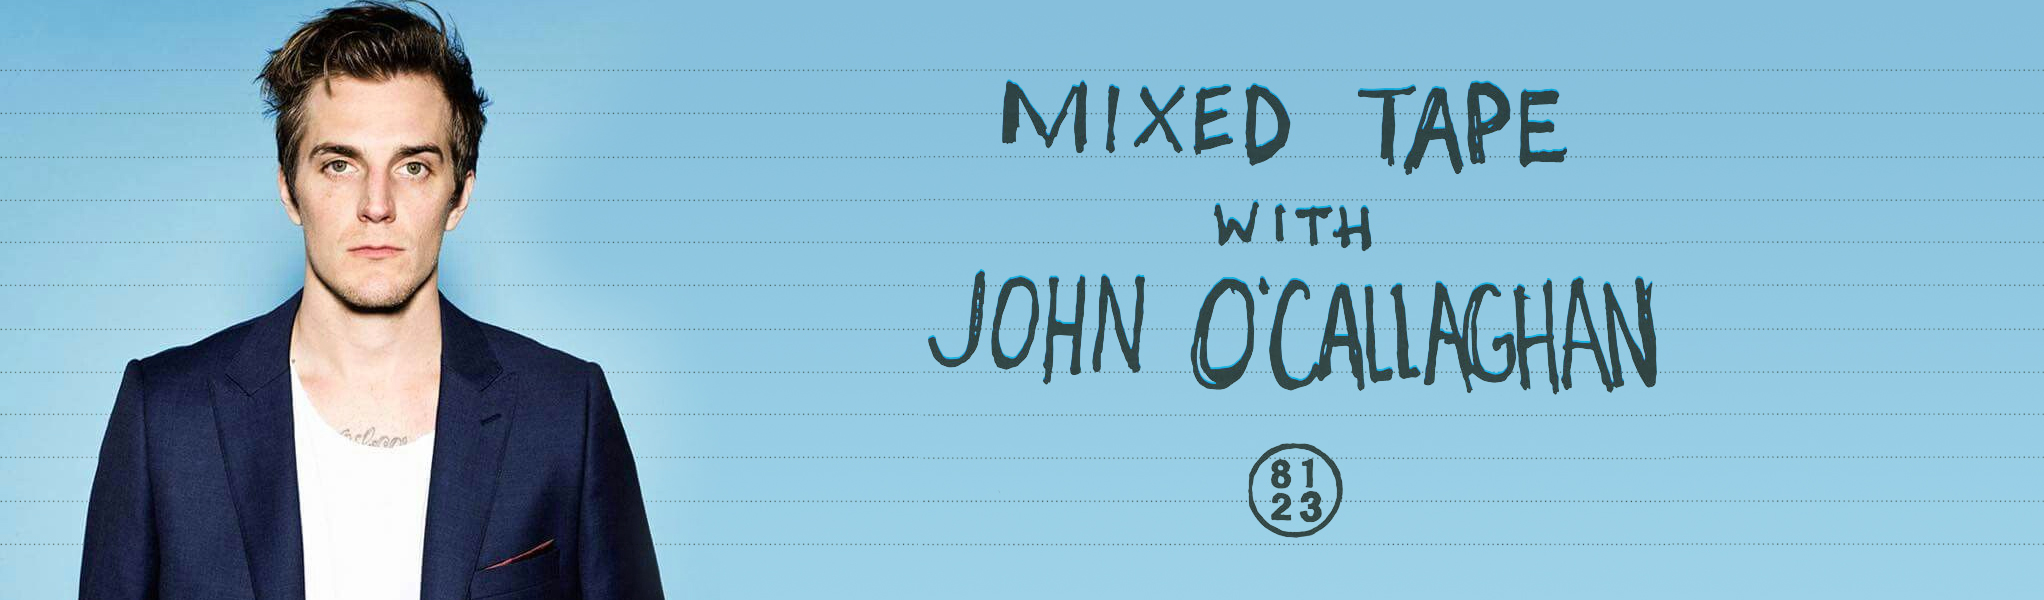 Mixed Tape with John O'Callaghan